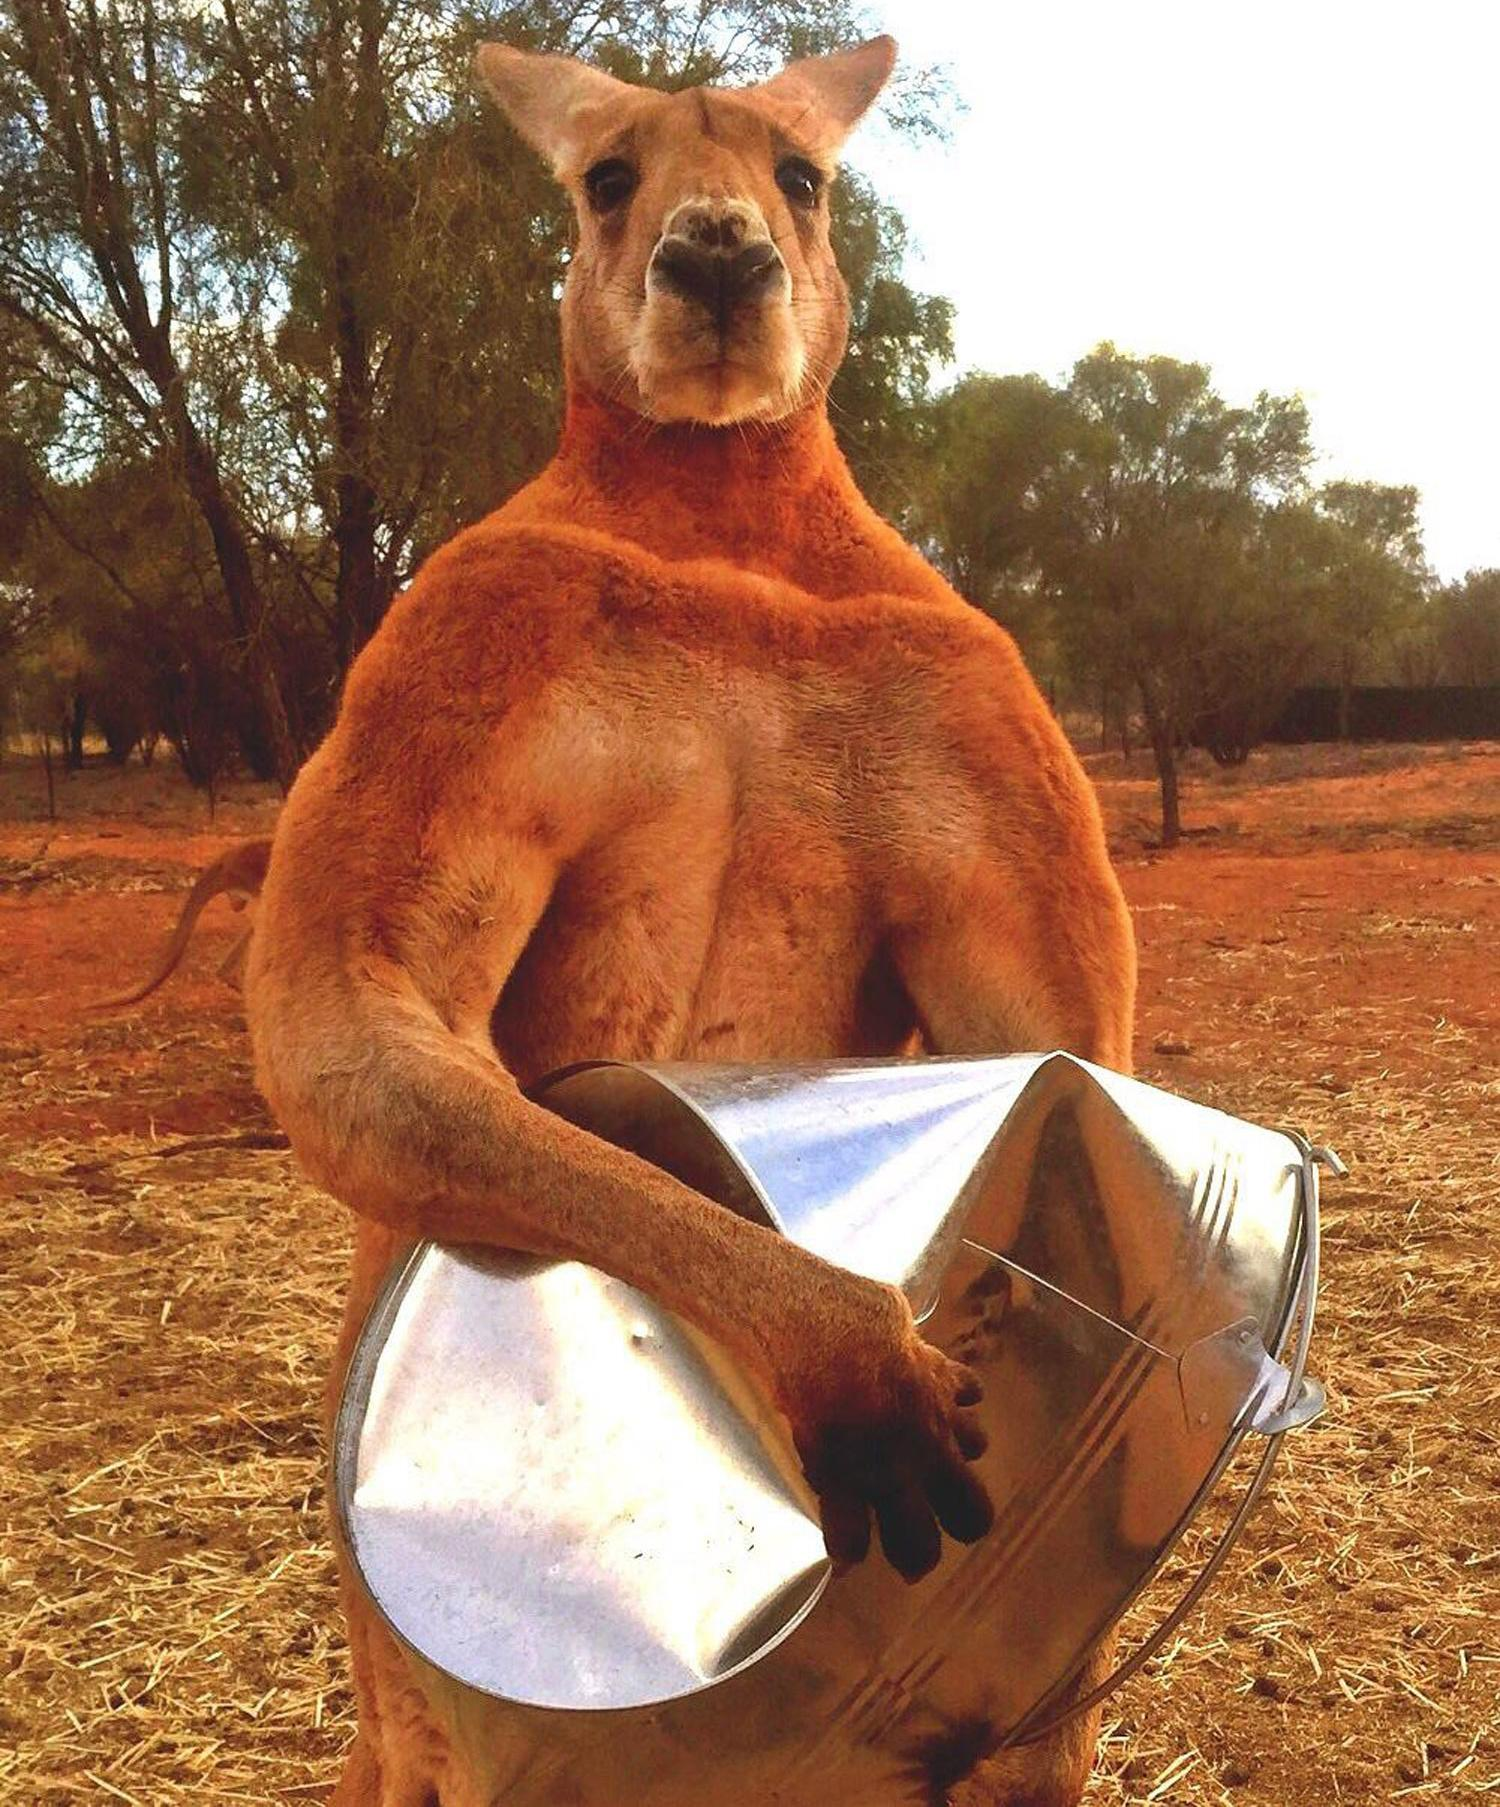 Death of Roger, the ripped kangaroo, sparks outpouring of grief on social media